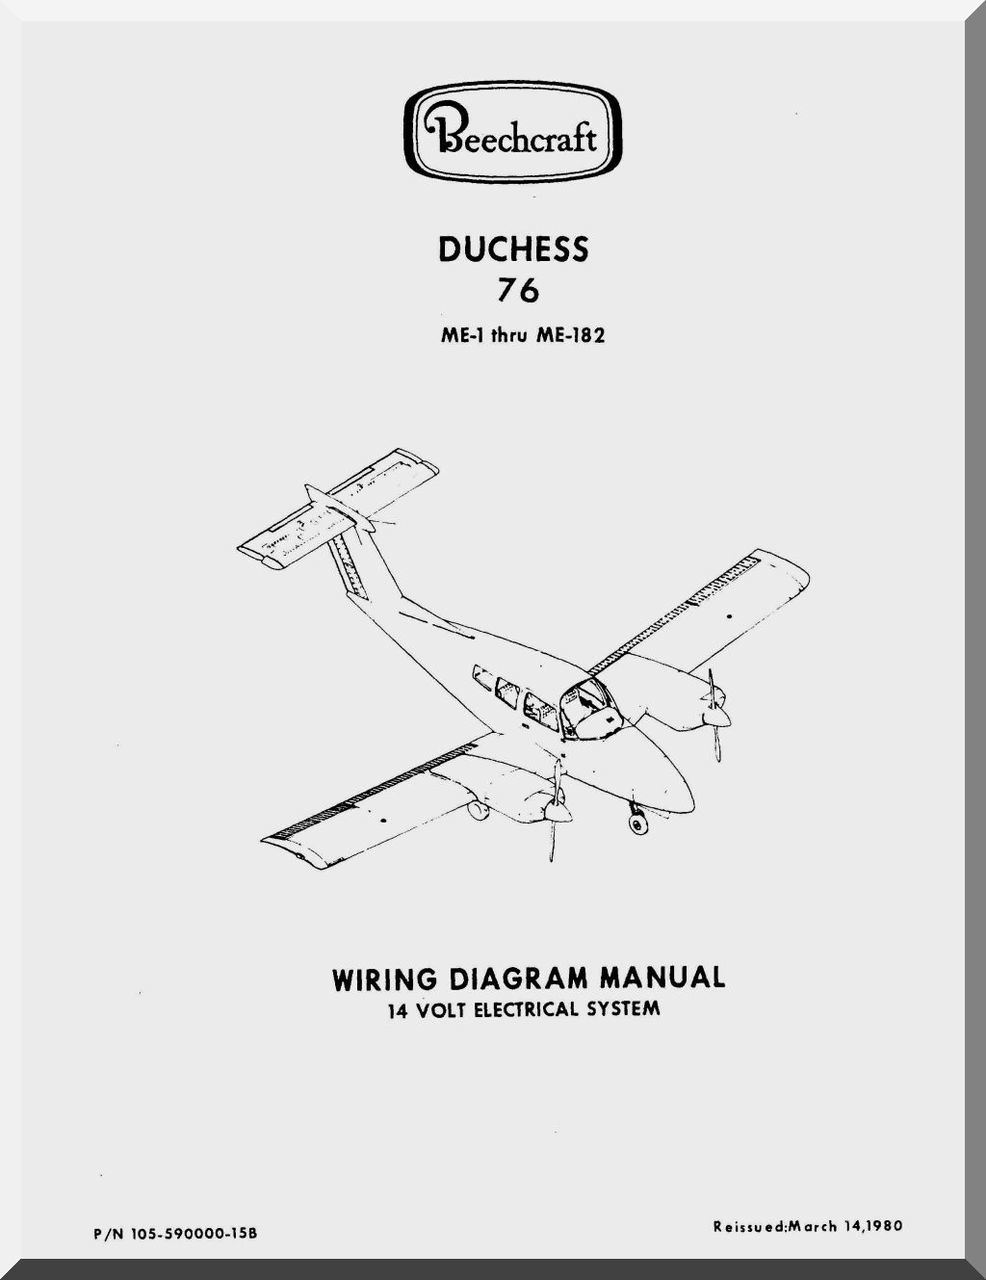 [OR_3084] General Aviation Electrical Diagram Schematic Wiring